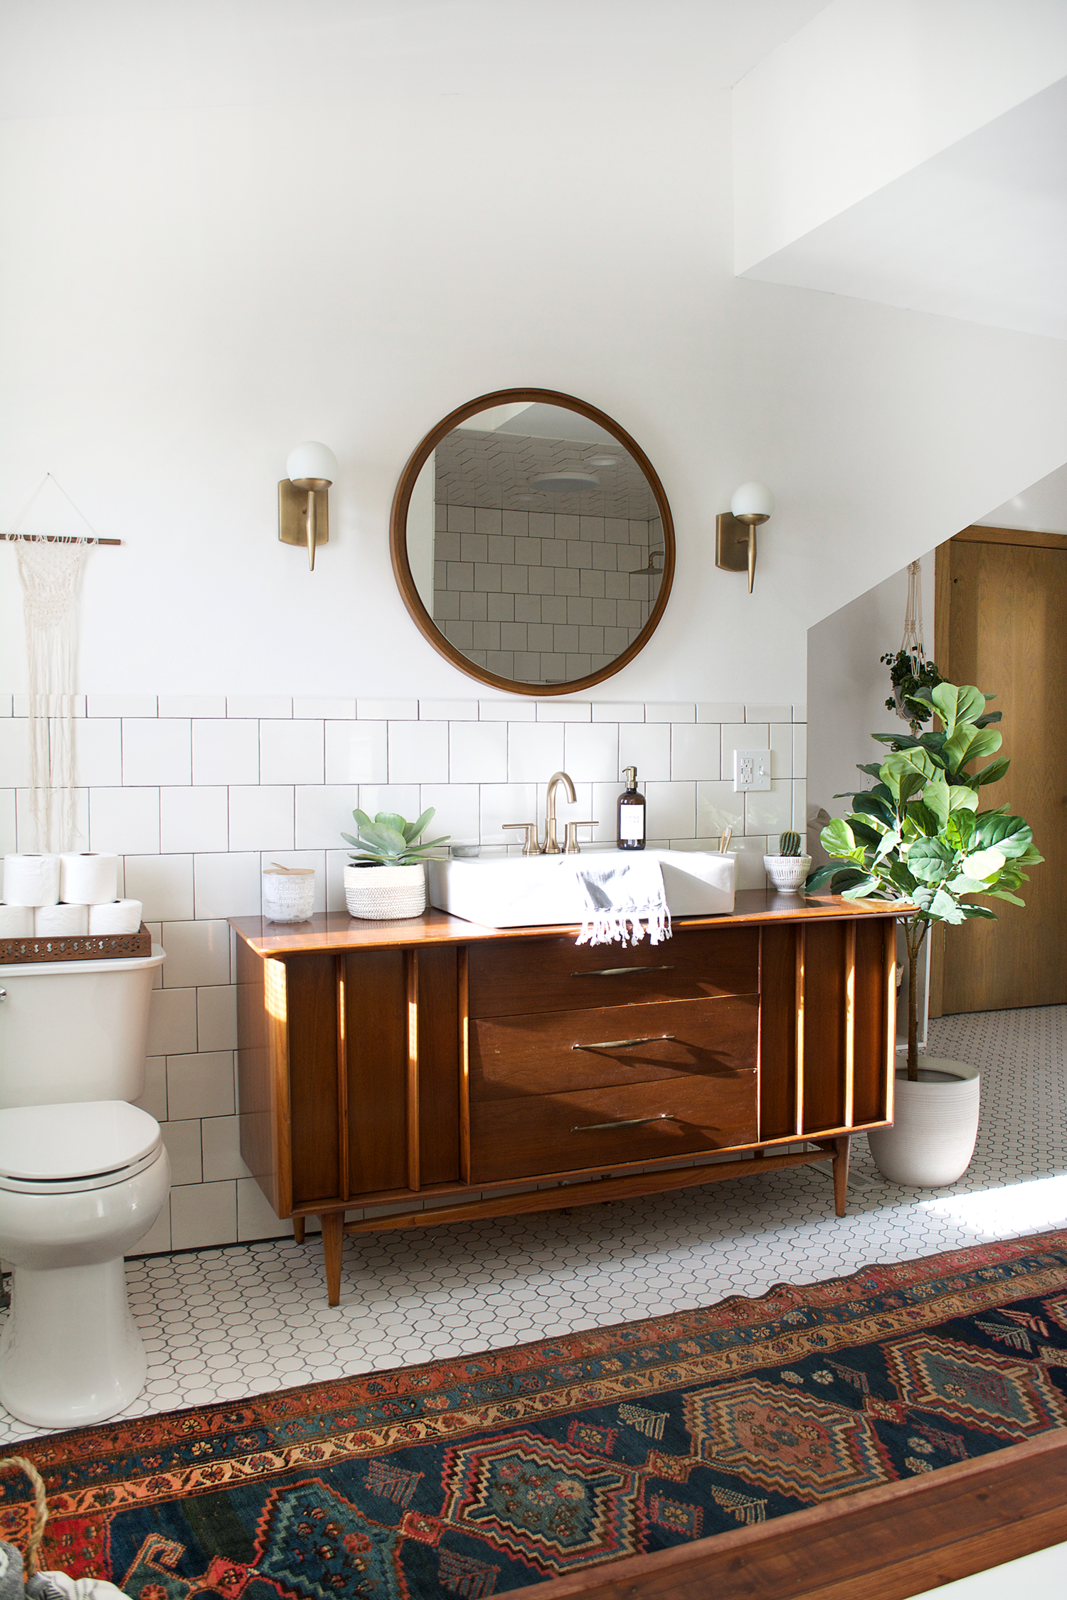 Before & After: An Outdated Bathroom Gets a Complete Makeover in ...